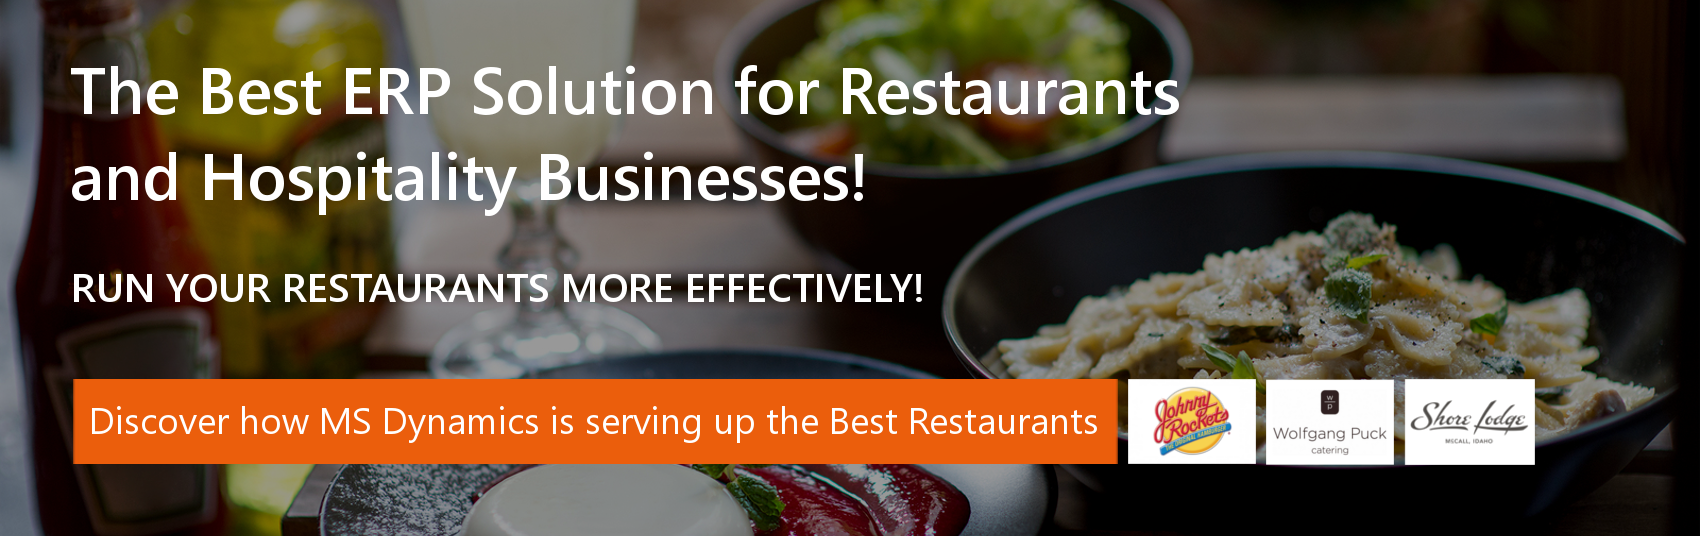 ERP for Restaurants and Hospitality Businesses